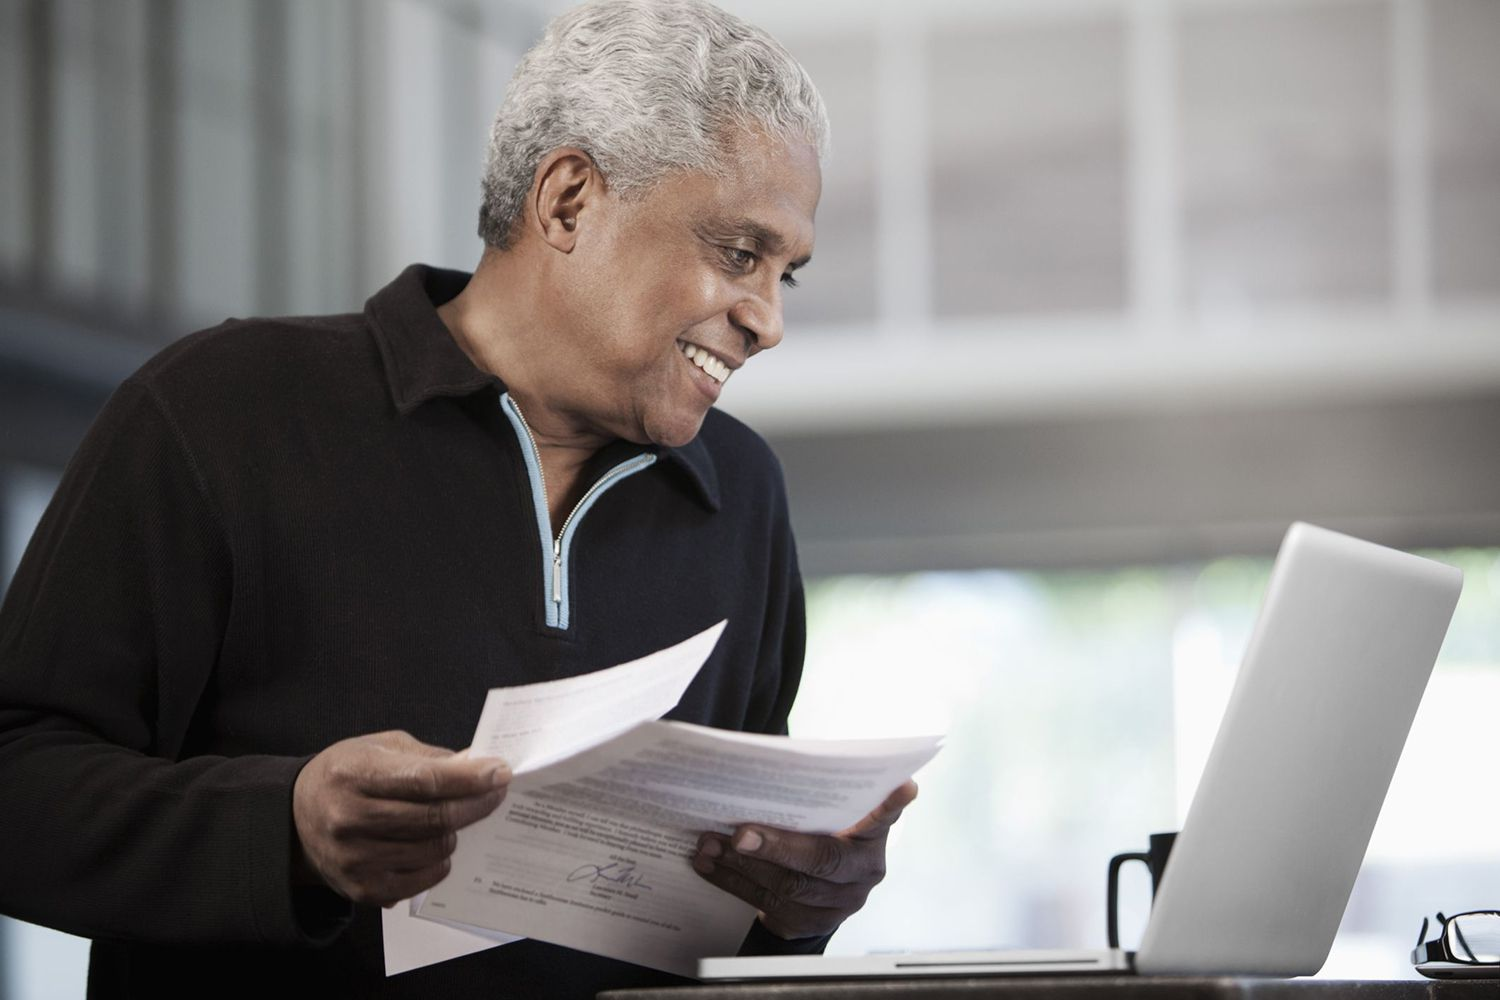 Man With Letter and Laptop